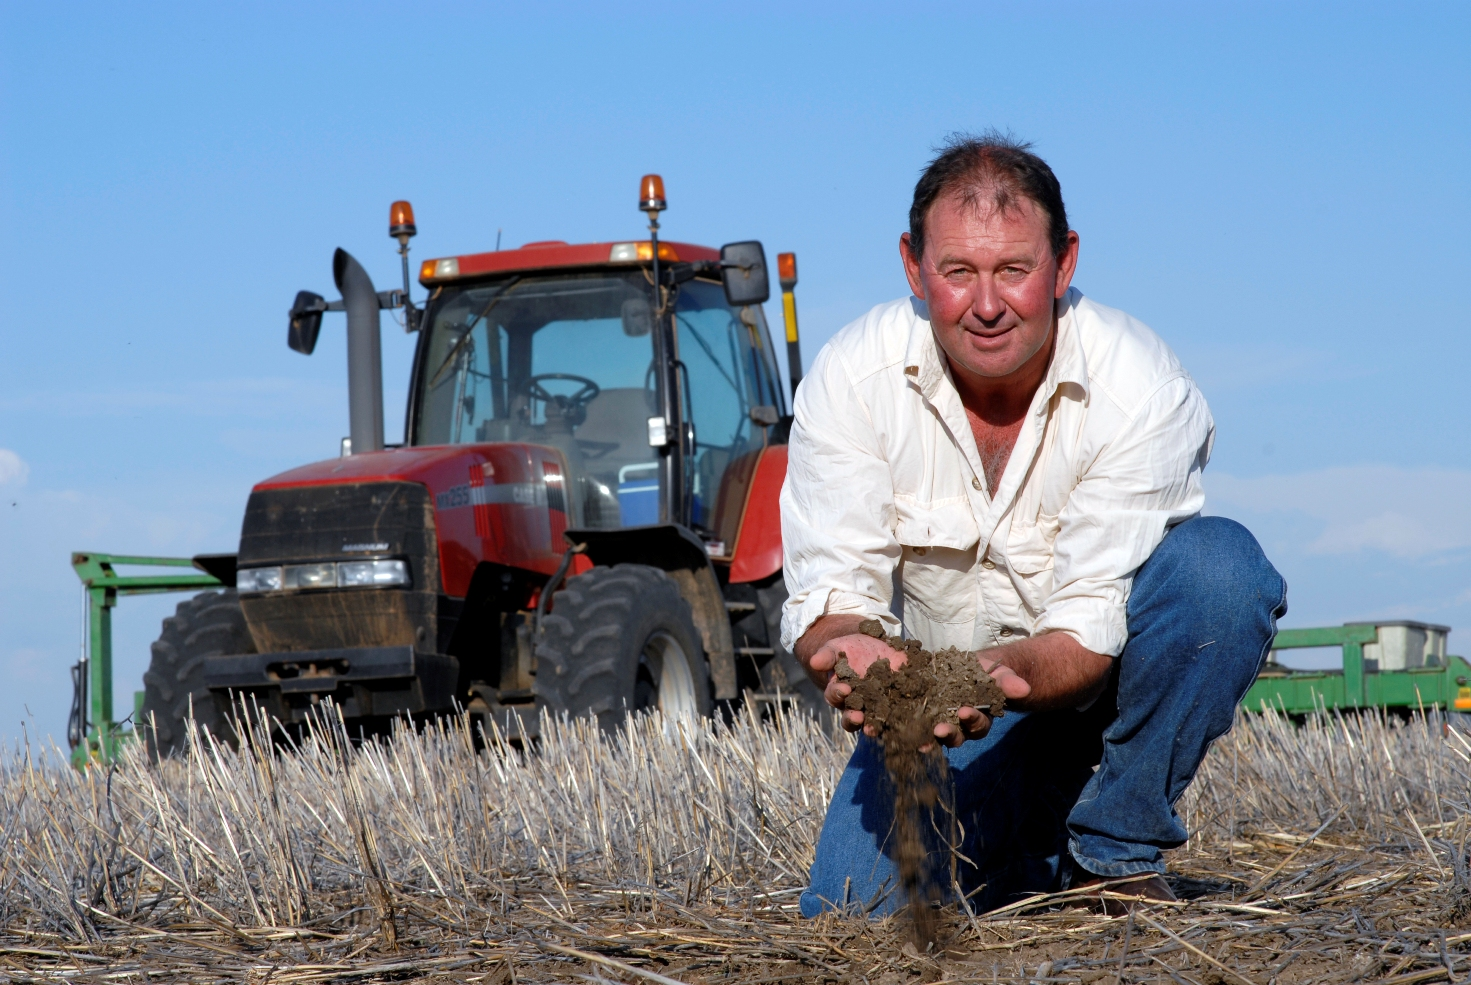 Keith Perrett kneeling in a harvested paddock with soil pouring through his hands. A red harvester can be seen in the background.